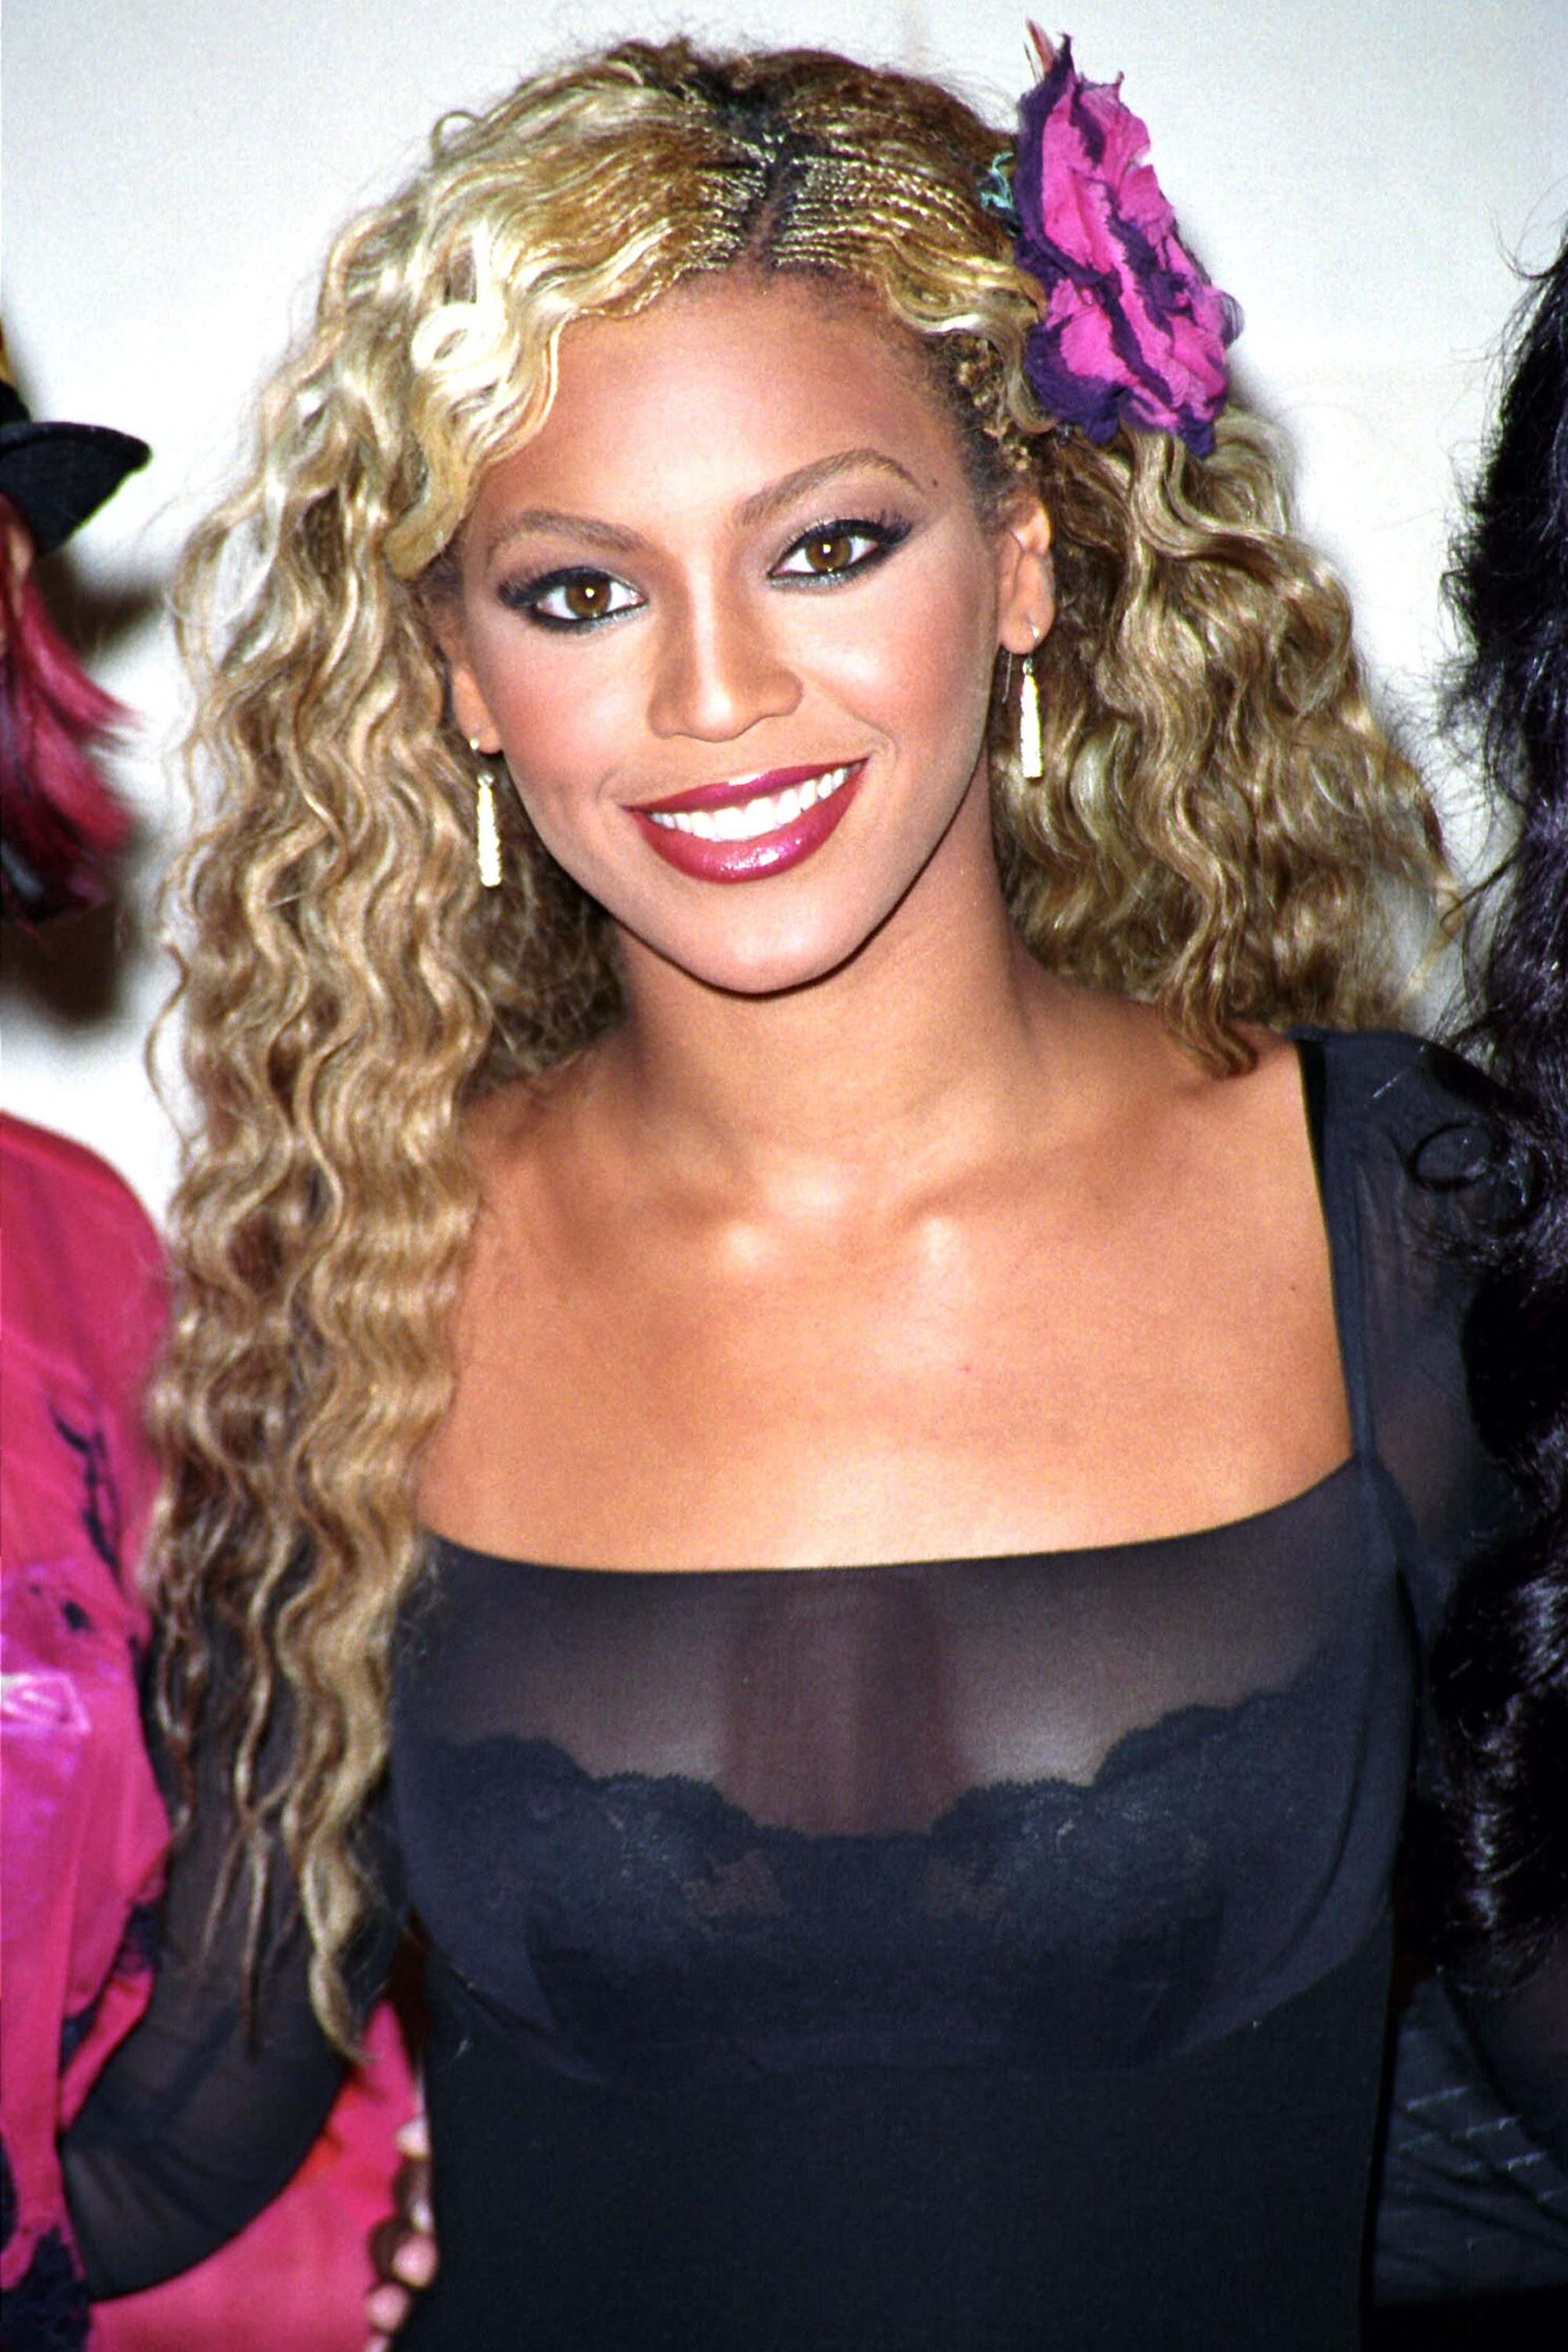 Pleasant 40 Beyonce Hairstyles Beyonce39S Real Hair Long Hair And Short Short Hairstyles For Black Women Fulllsitofus